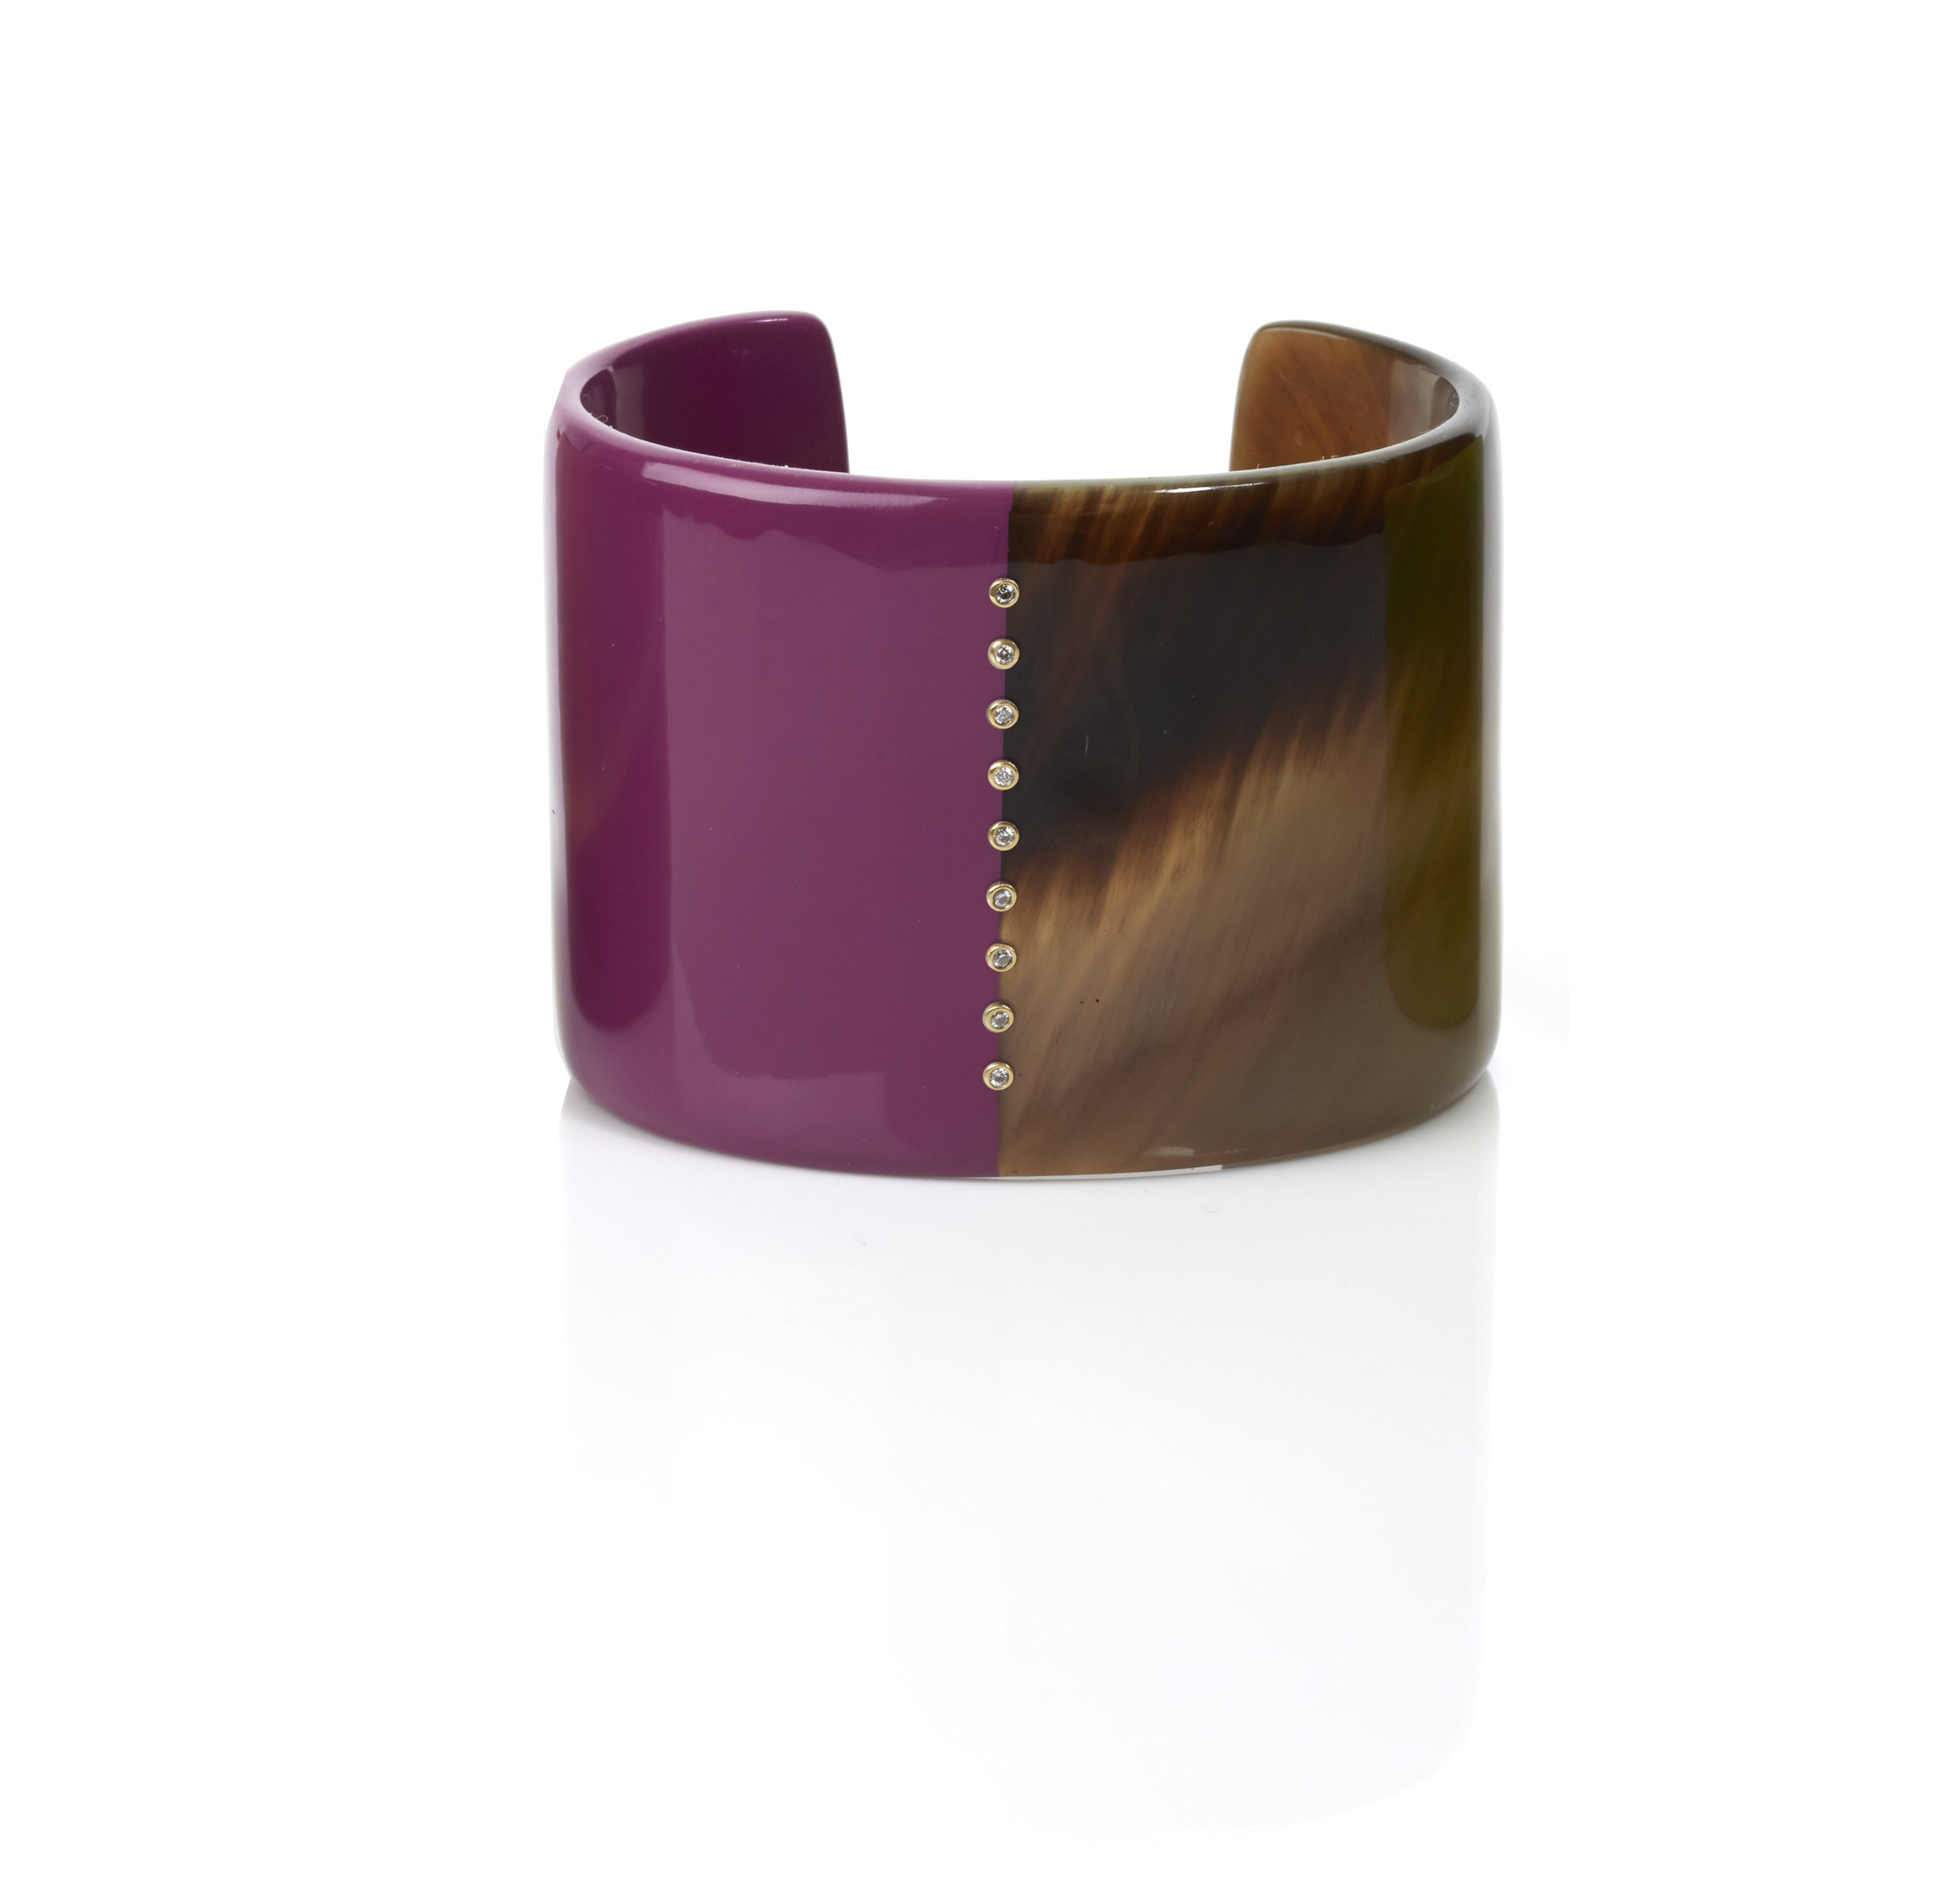 Horn Cuff, shown here in honey horn with magenta lacquer, embellished with nine 18k set diamonds.  Inquire